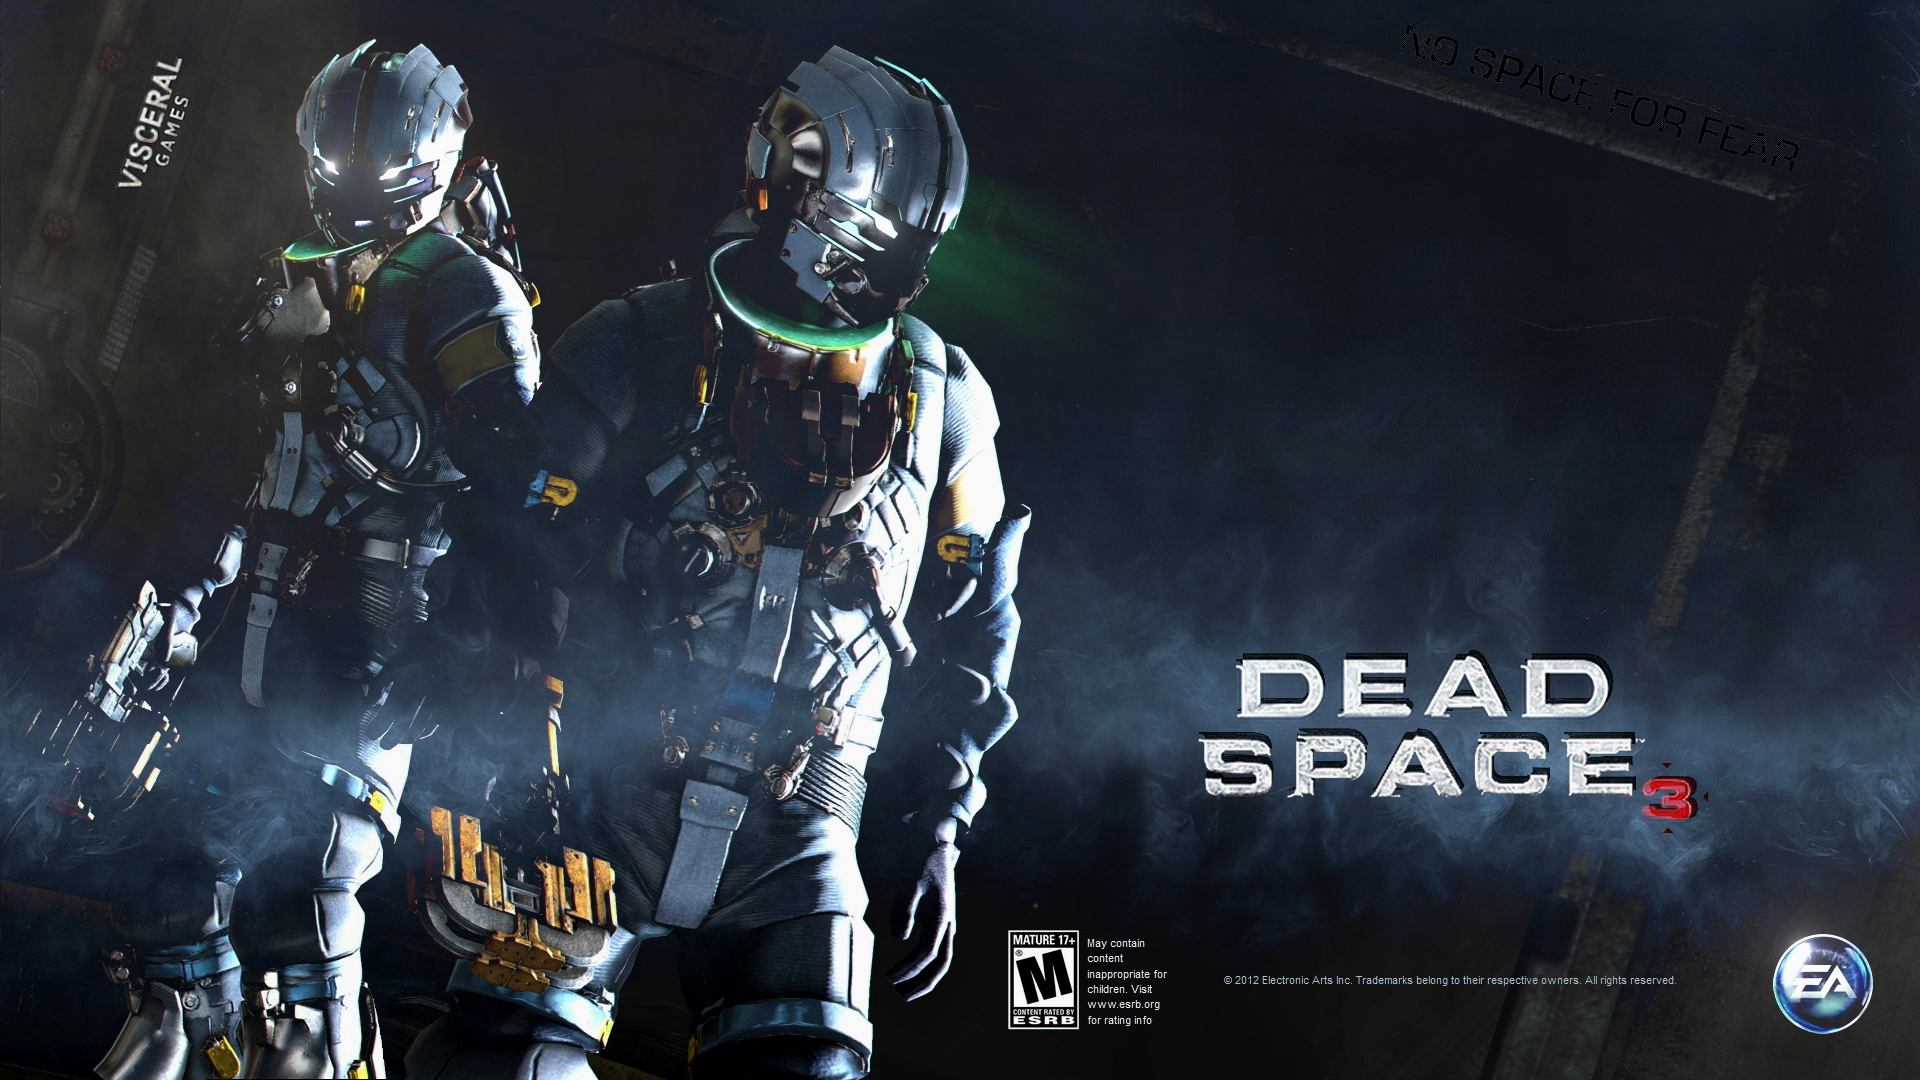 Dead Space 3 Game 2013 605.61 Kb